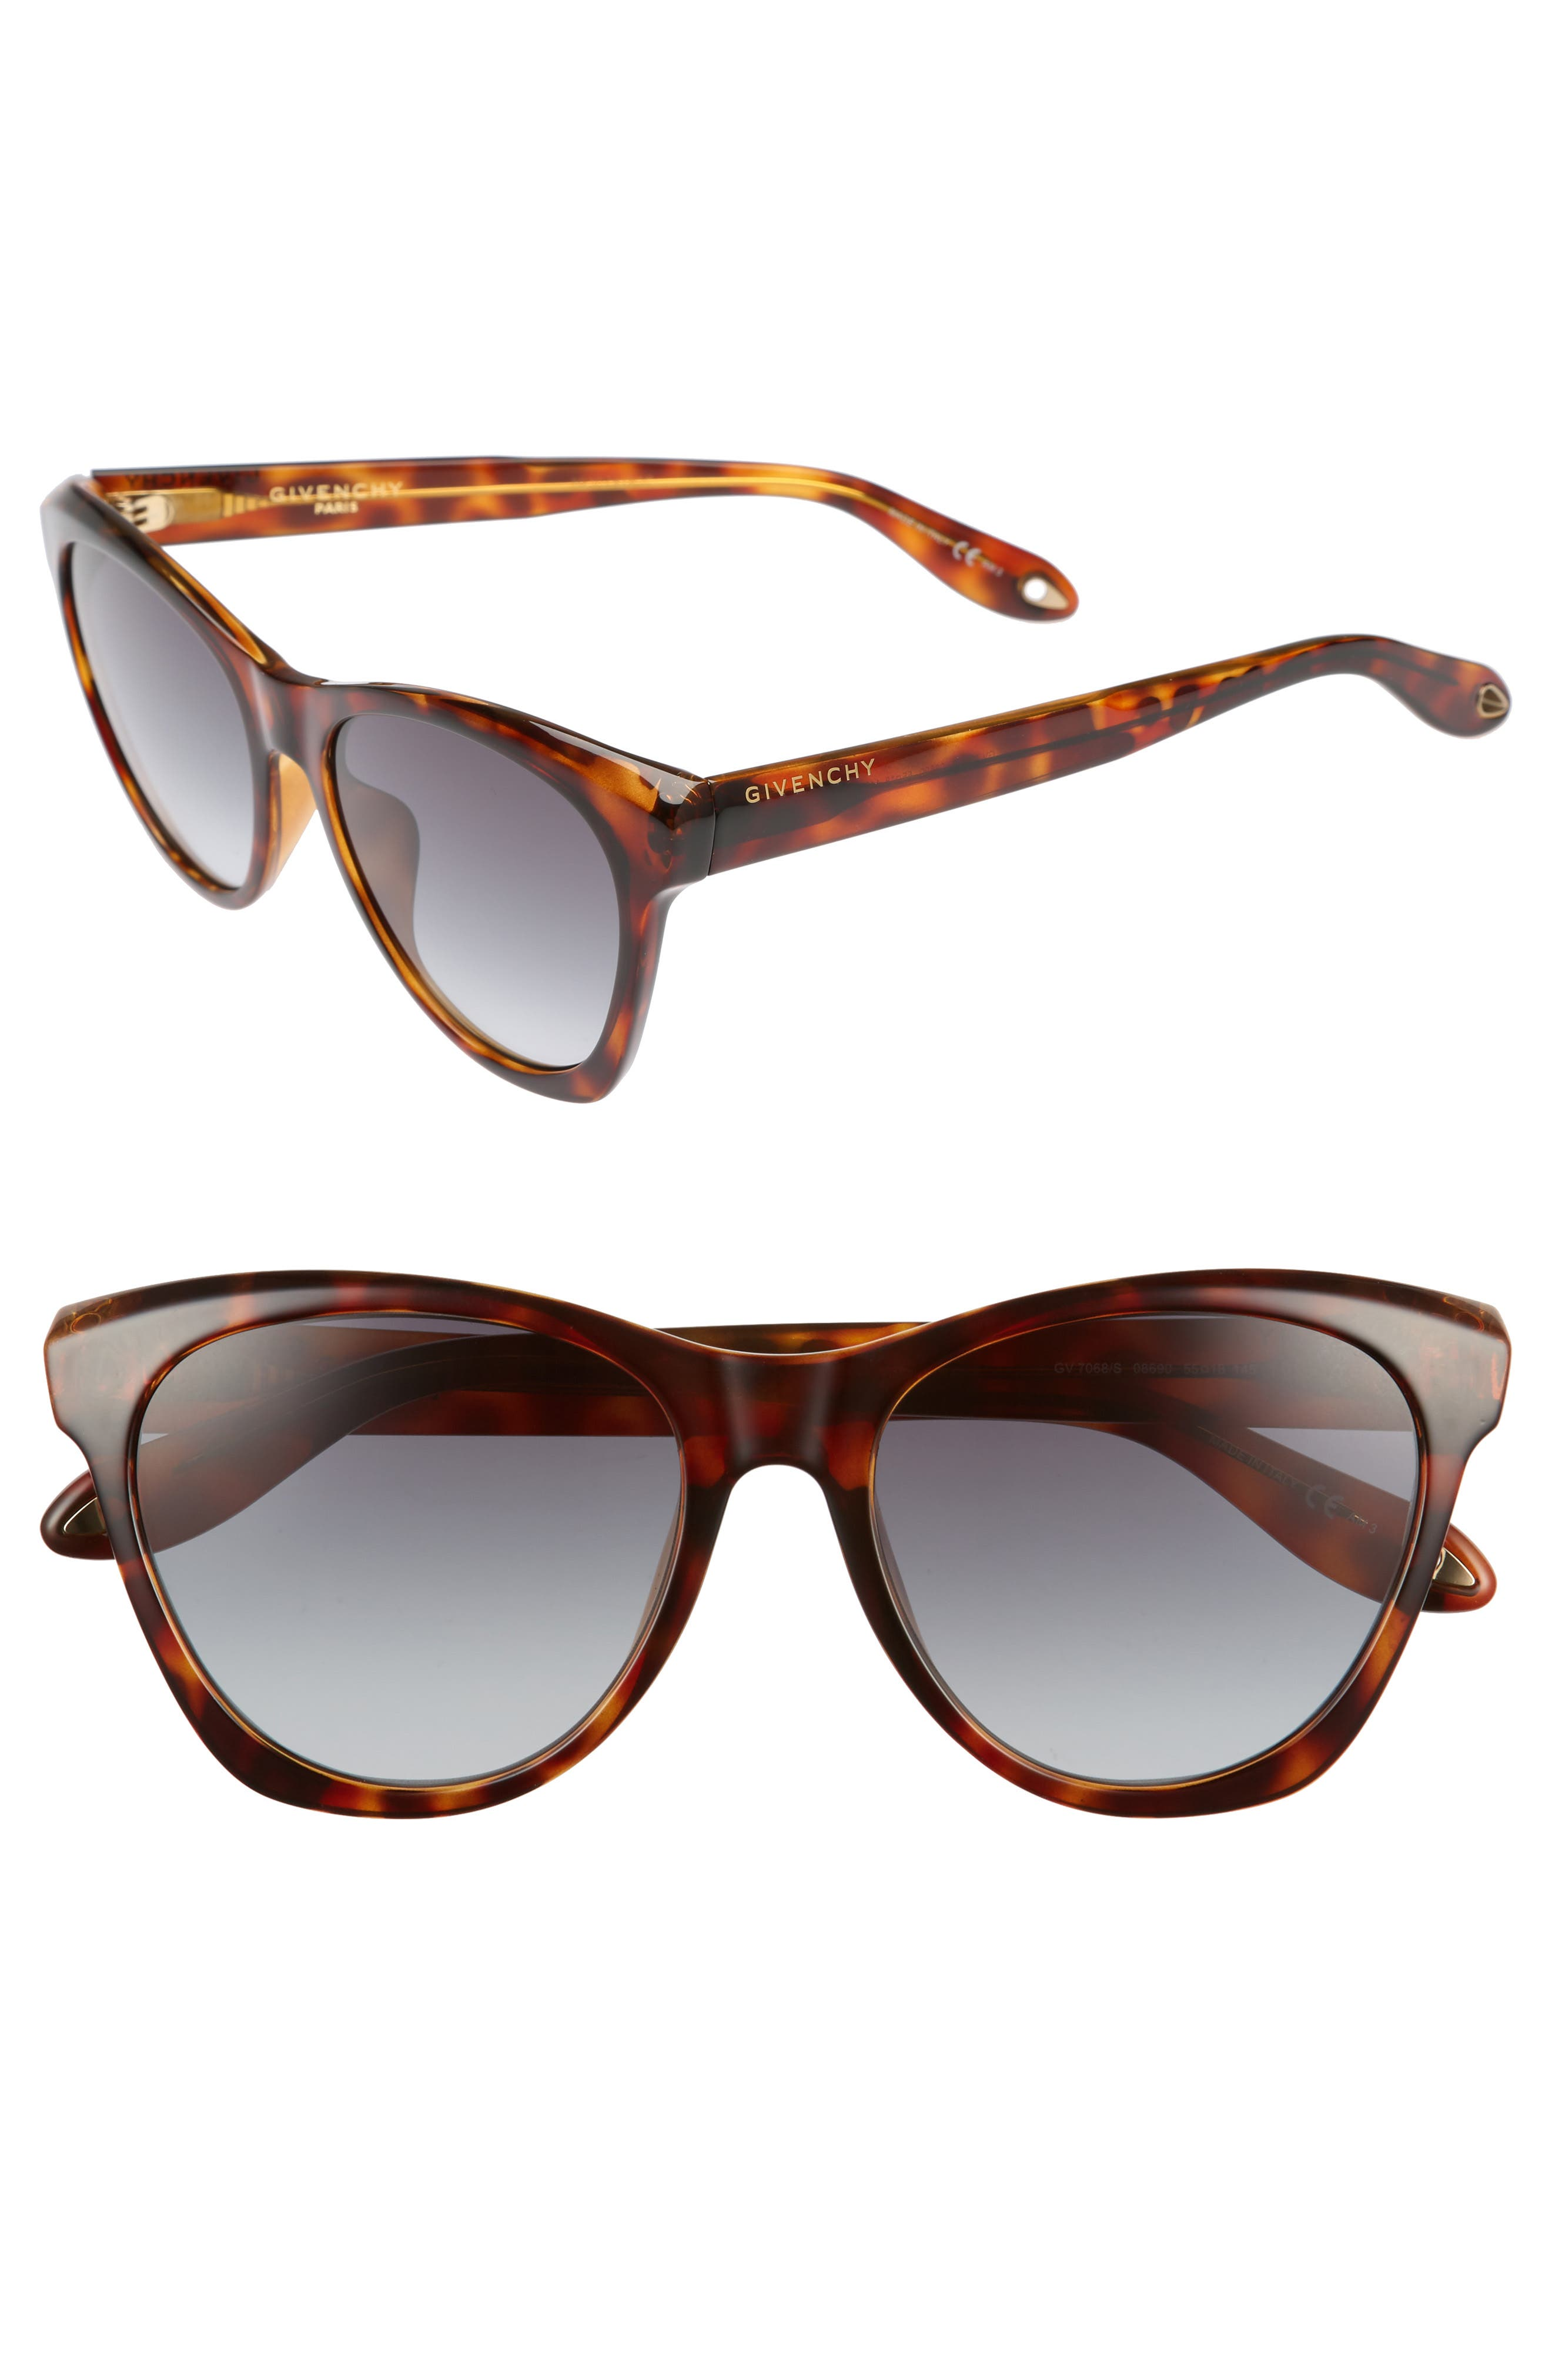 Alternate Image 1 Selected - Givenchy 55mm Cat Eye Sunglasses